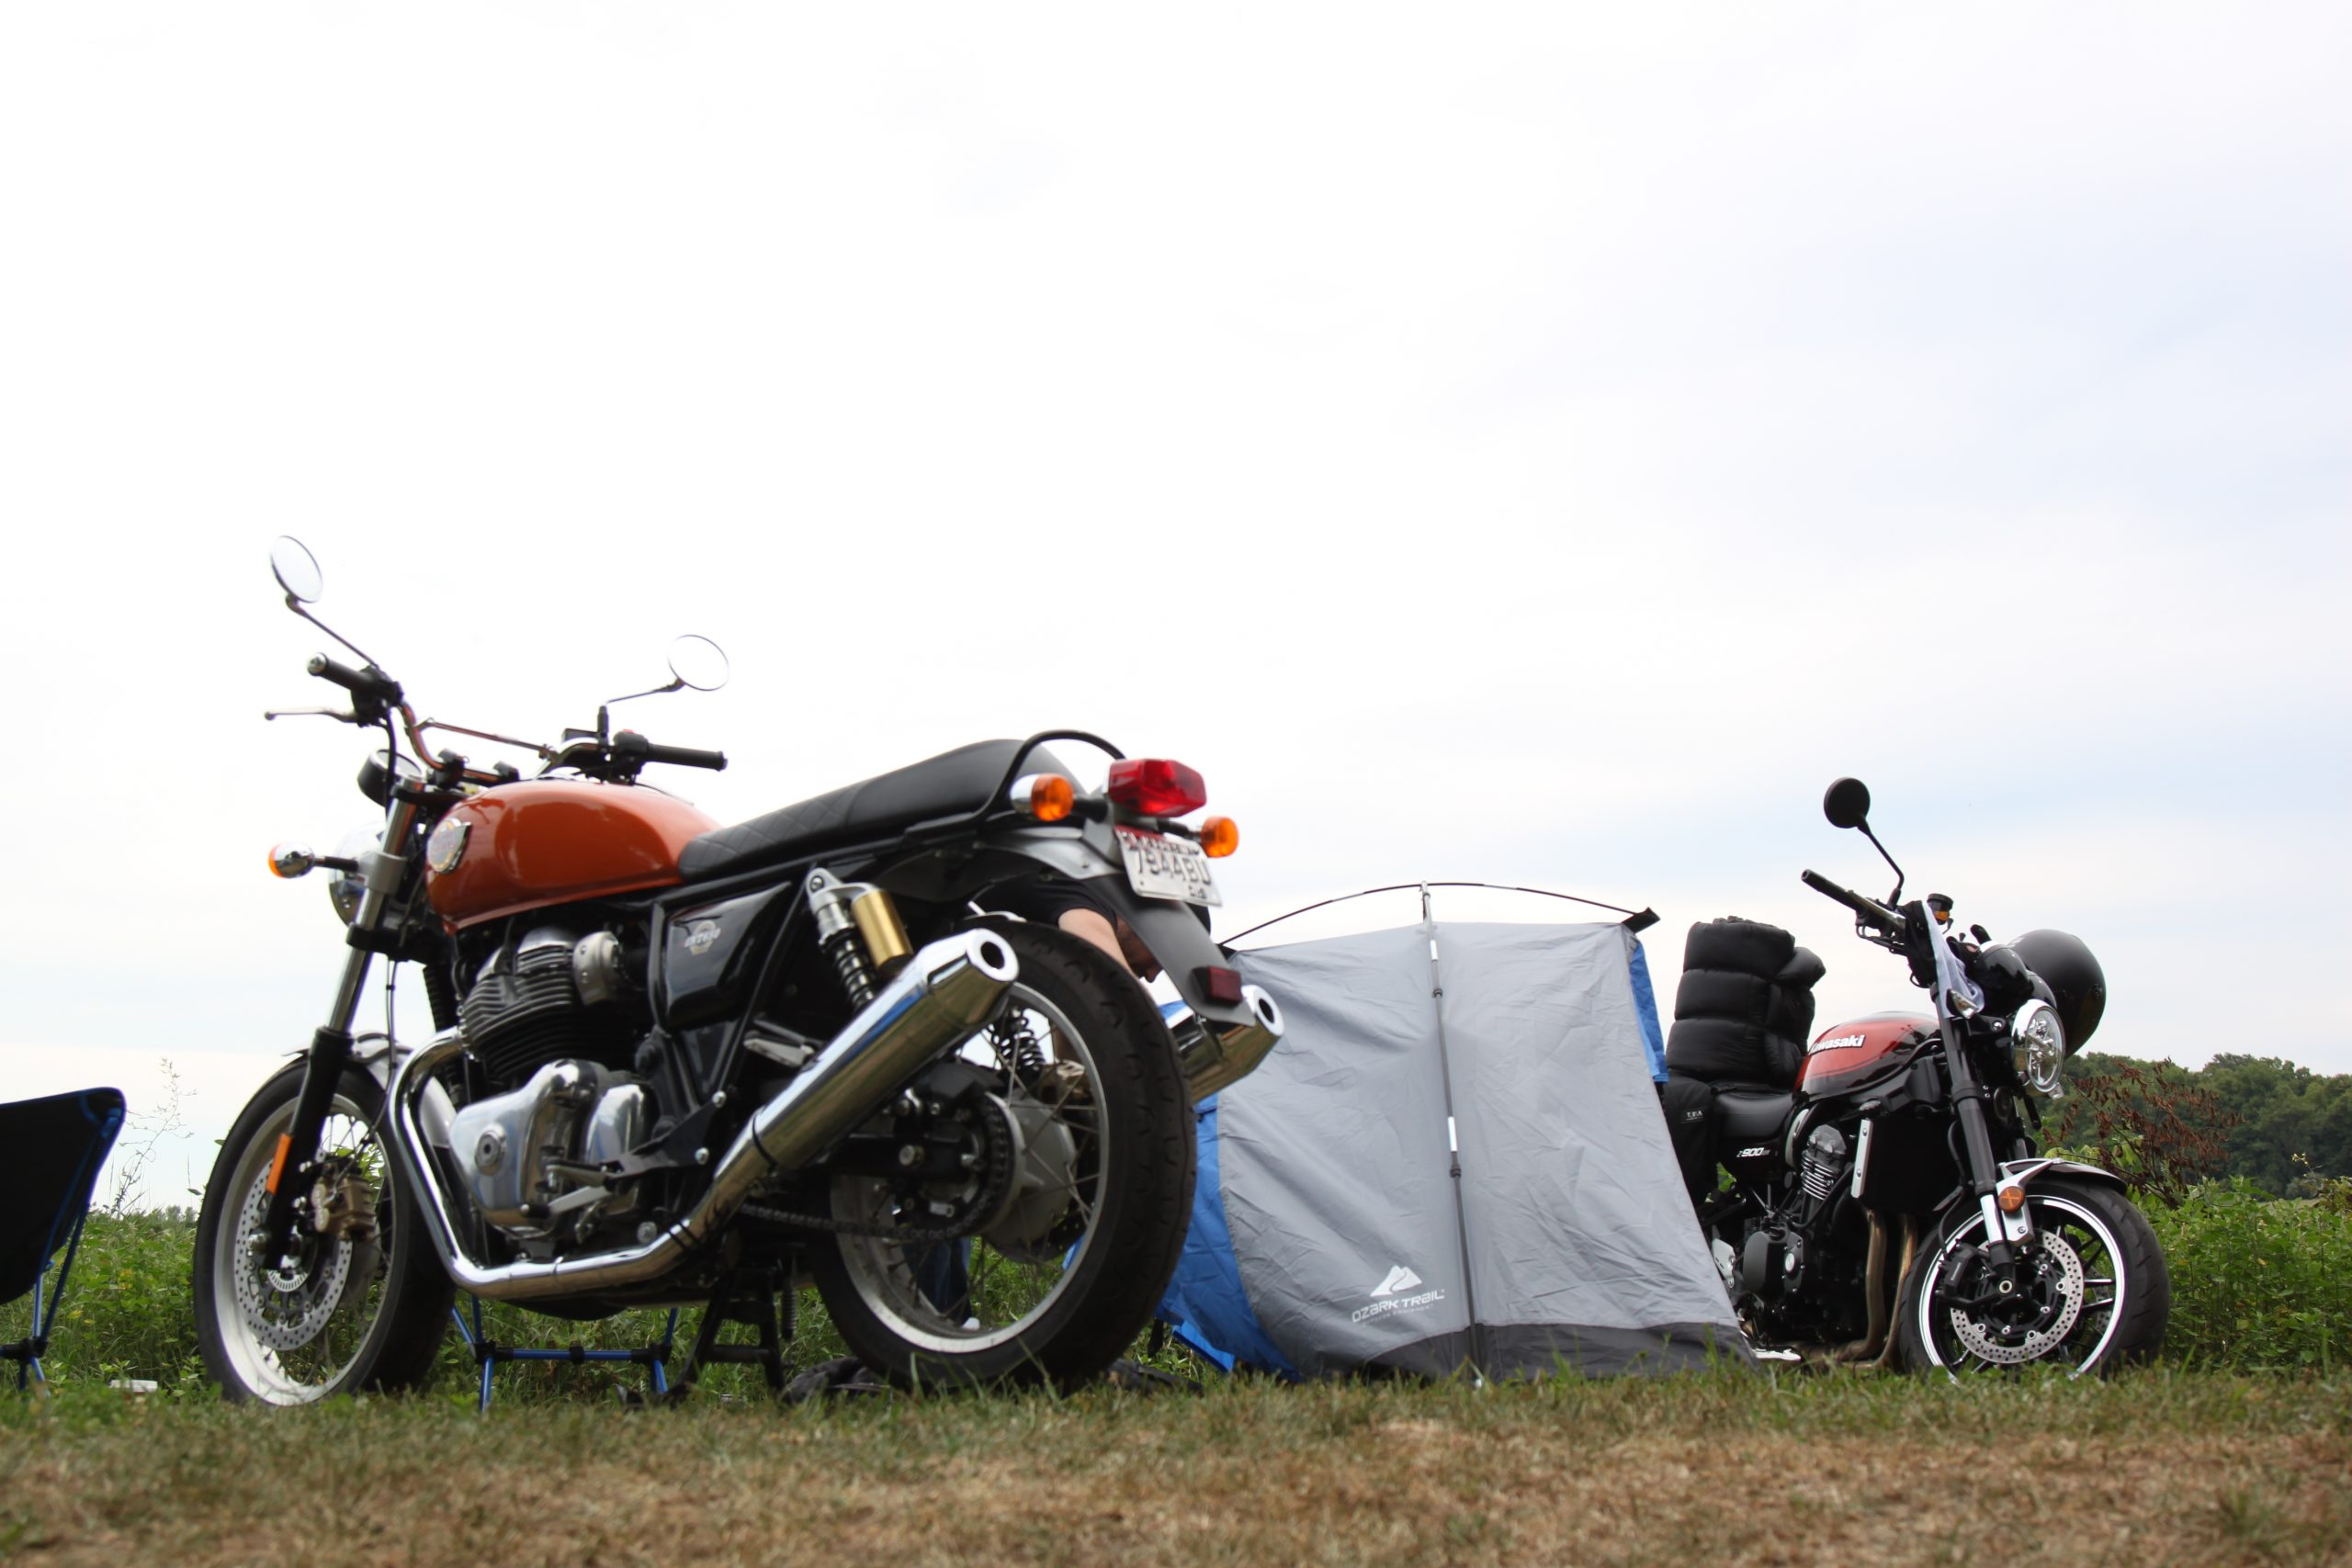 Royal Enfield INT650 at campsite